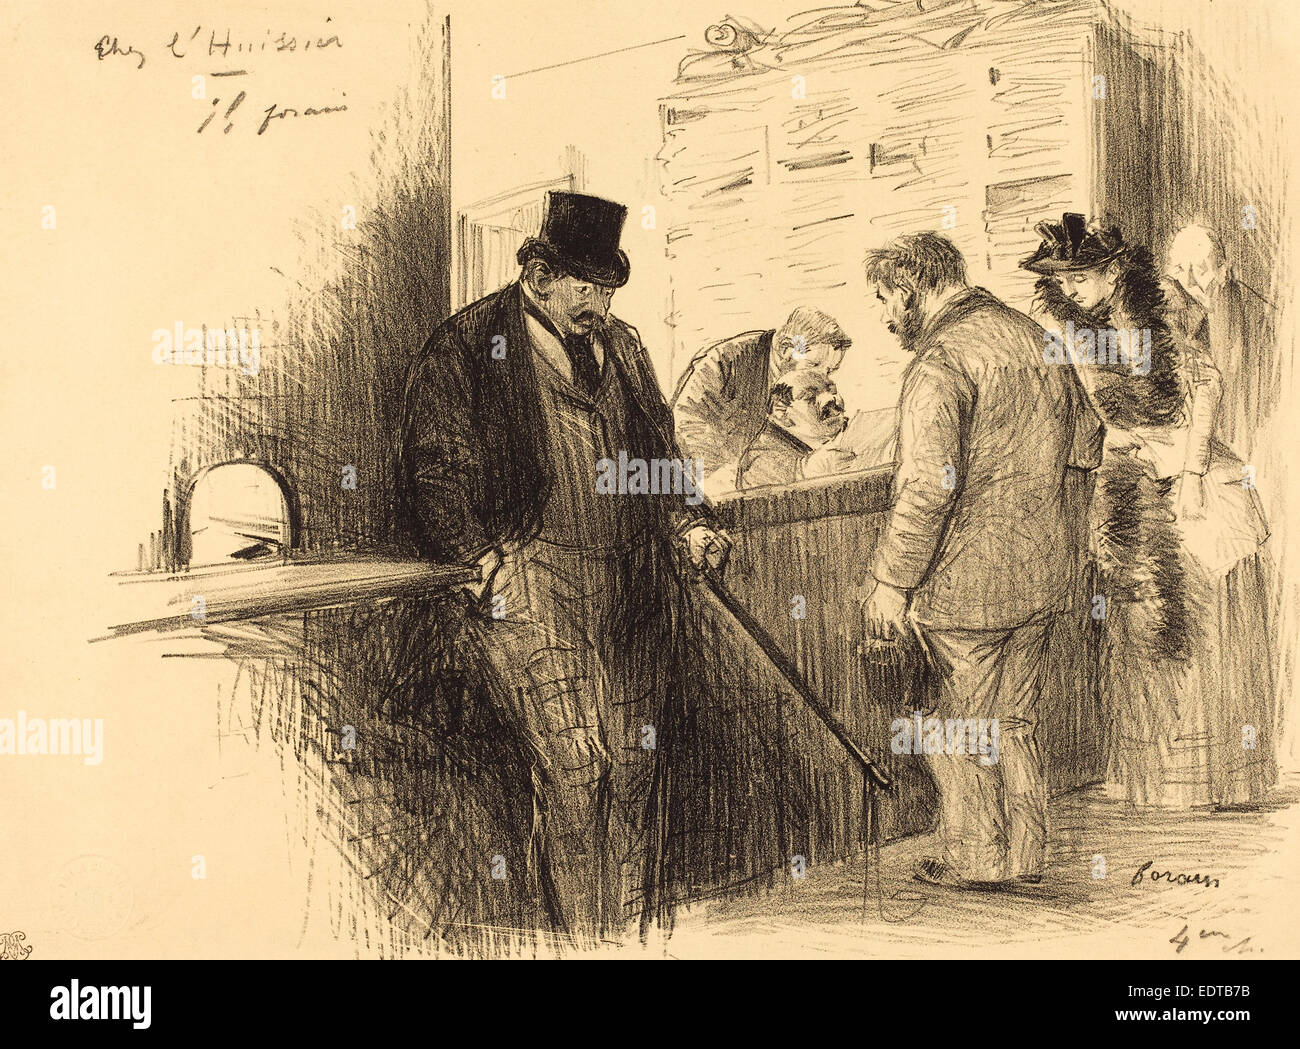 Jean-Louis Forain (French, 1852 - 1931), At the Bailiff's, c. 1891, lithograph - Stock Image